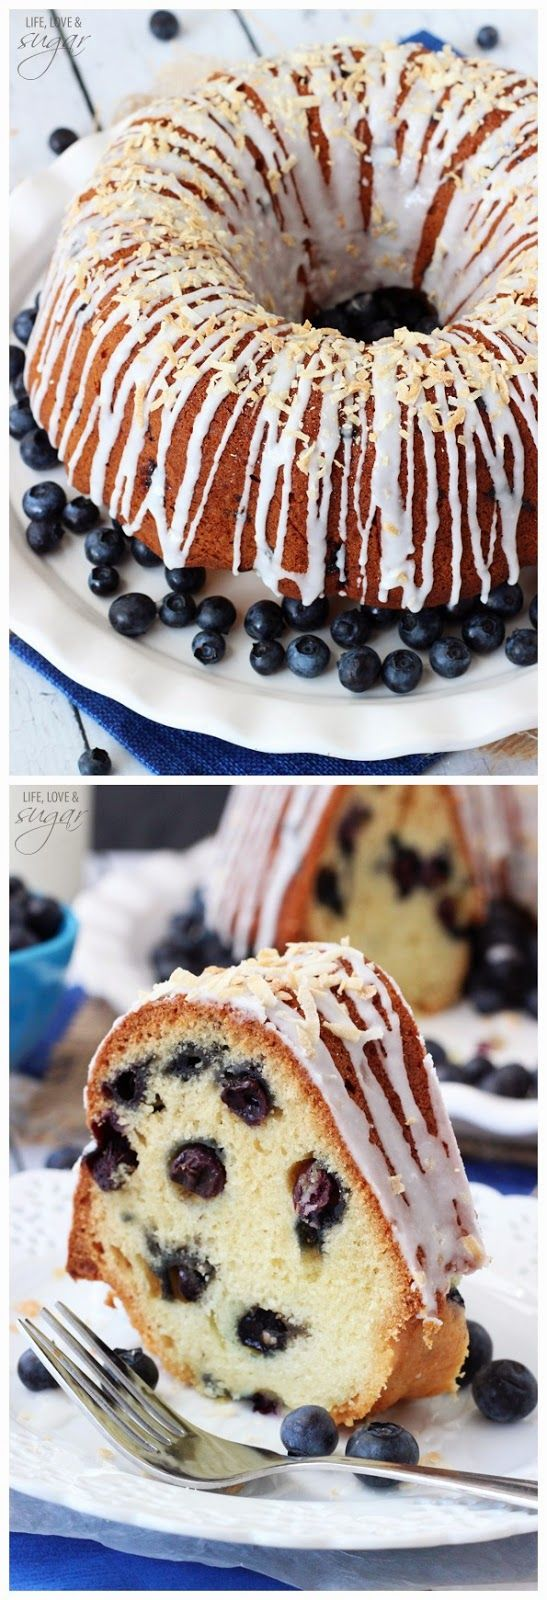 Blueberry Coconut Bundt Cake